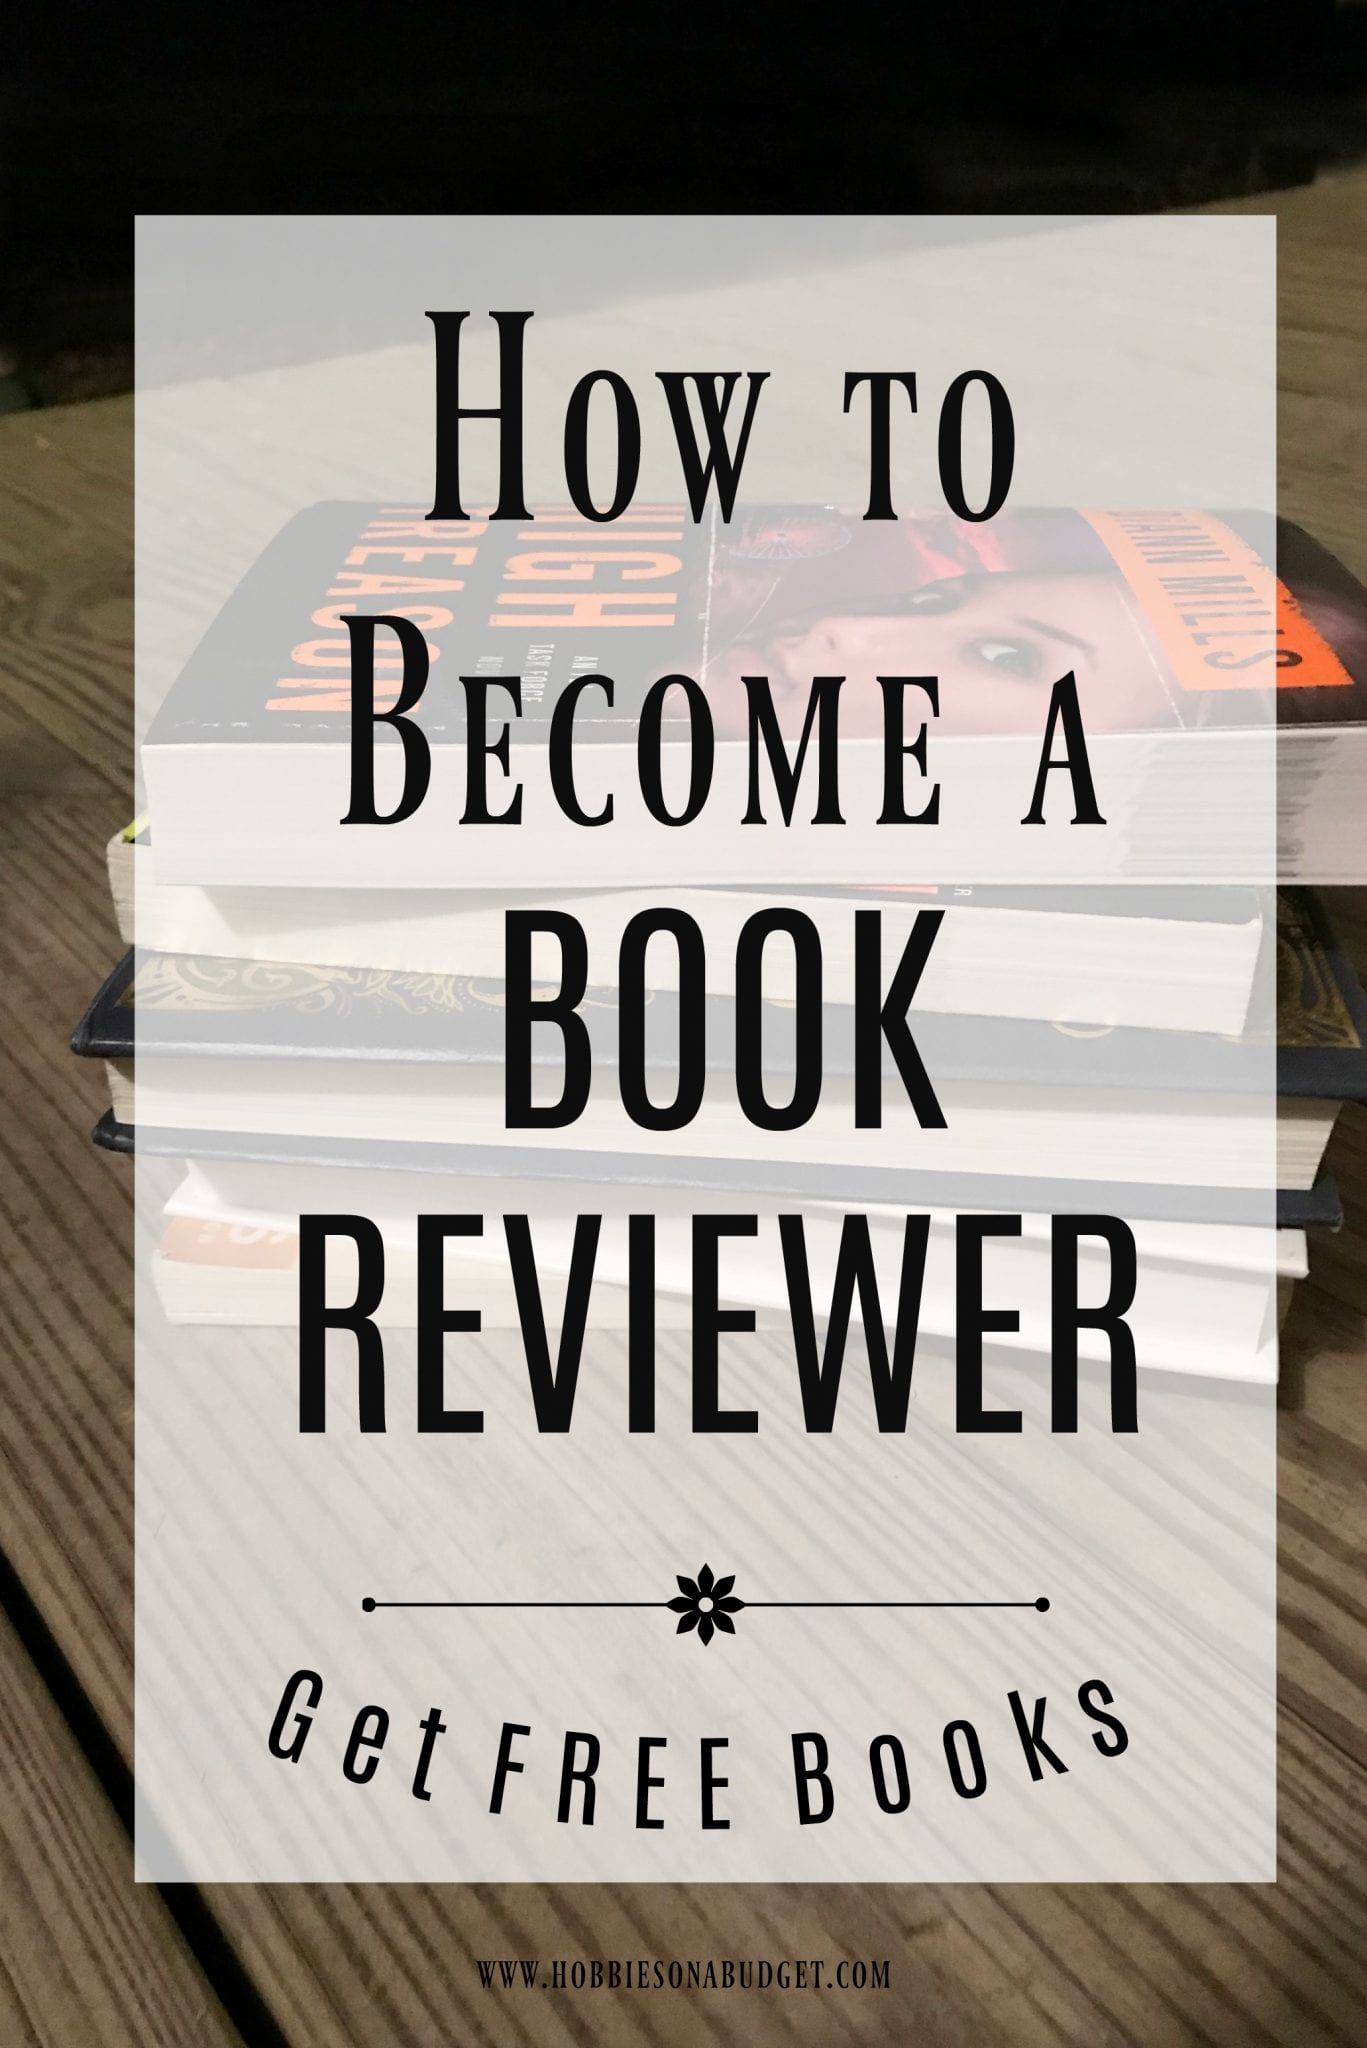 Do you love to read? Are you interested in getting free books to read (and keep or giveaway)? I am a bookworm - always have been. If you are already reviewing books, maybe some of these tips will help you find new books. If you are new to this, then welcome to the exciting hobby of Book Reviewer! #books #book #wheretofindbooks #freebooks